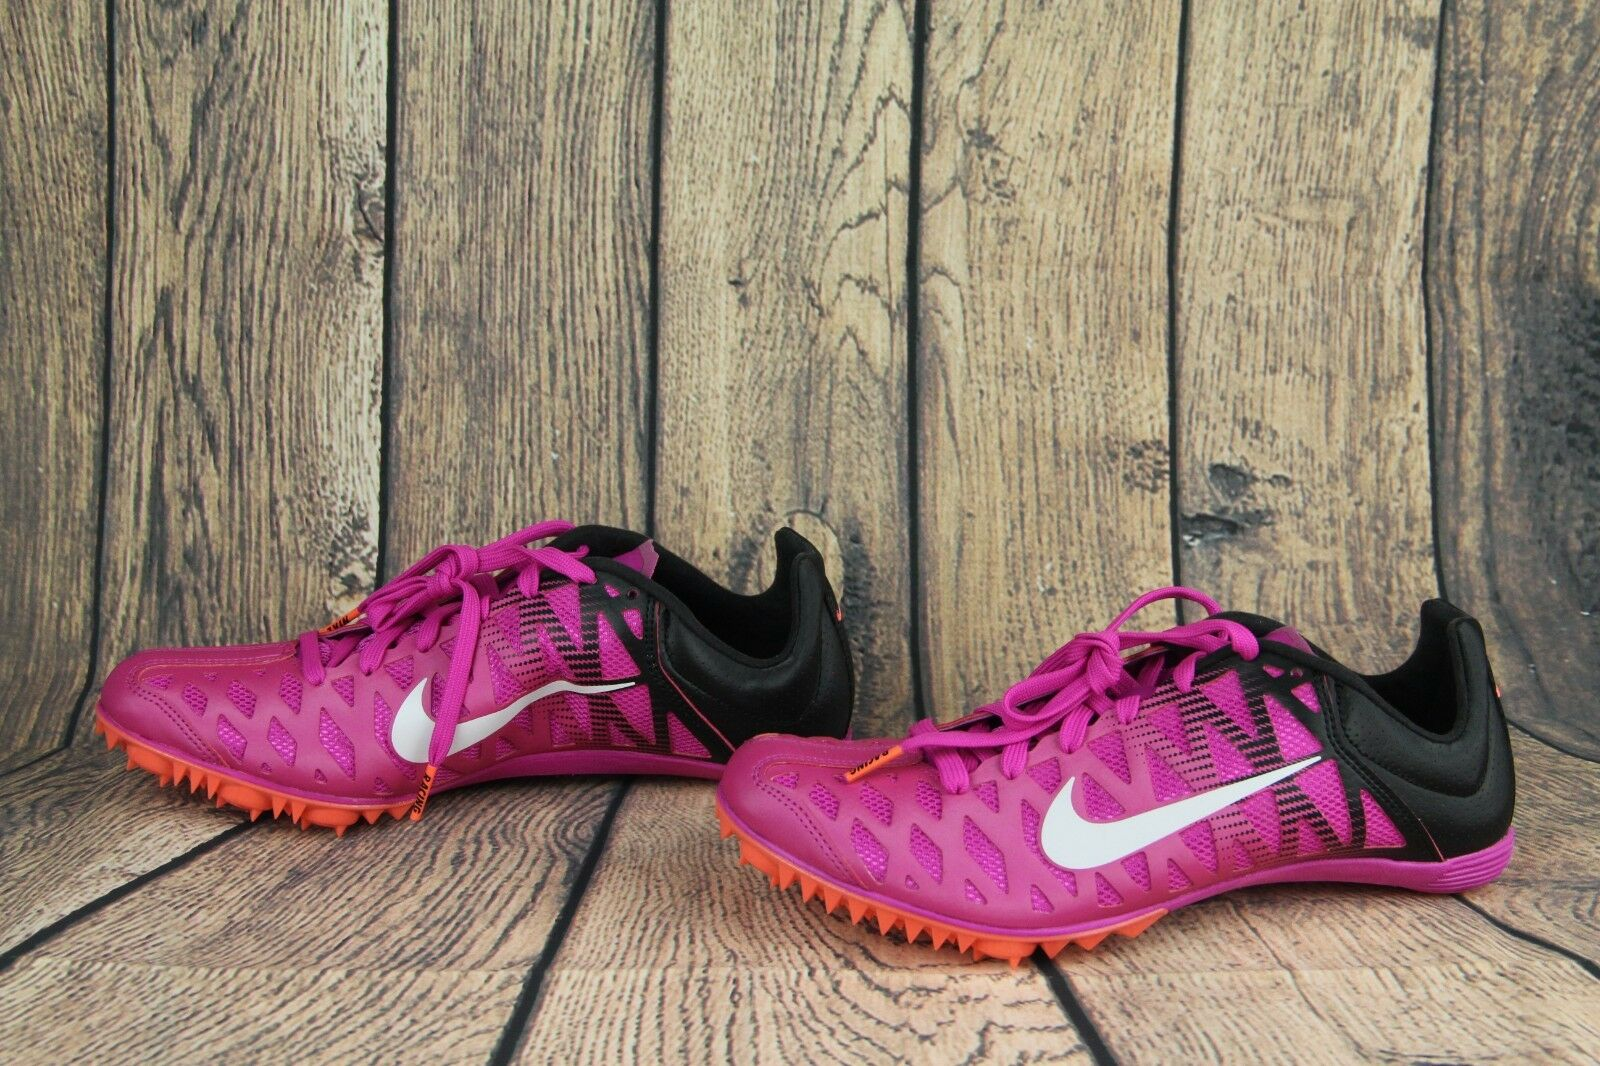 Nike Zoom Maxcat 4 Spikes Running shoes Fire Pink Pink Pink Black 549150-601 Mens Size 7 9f7057